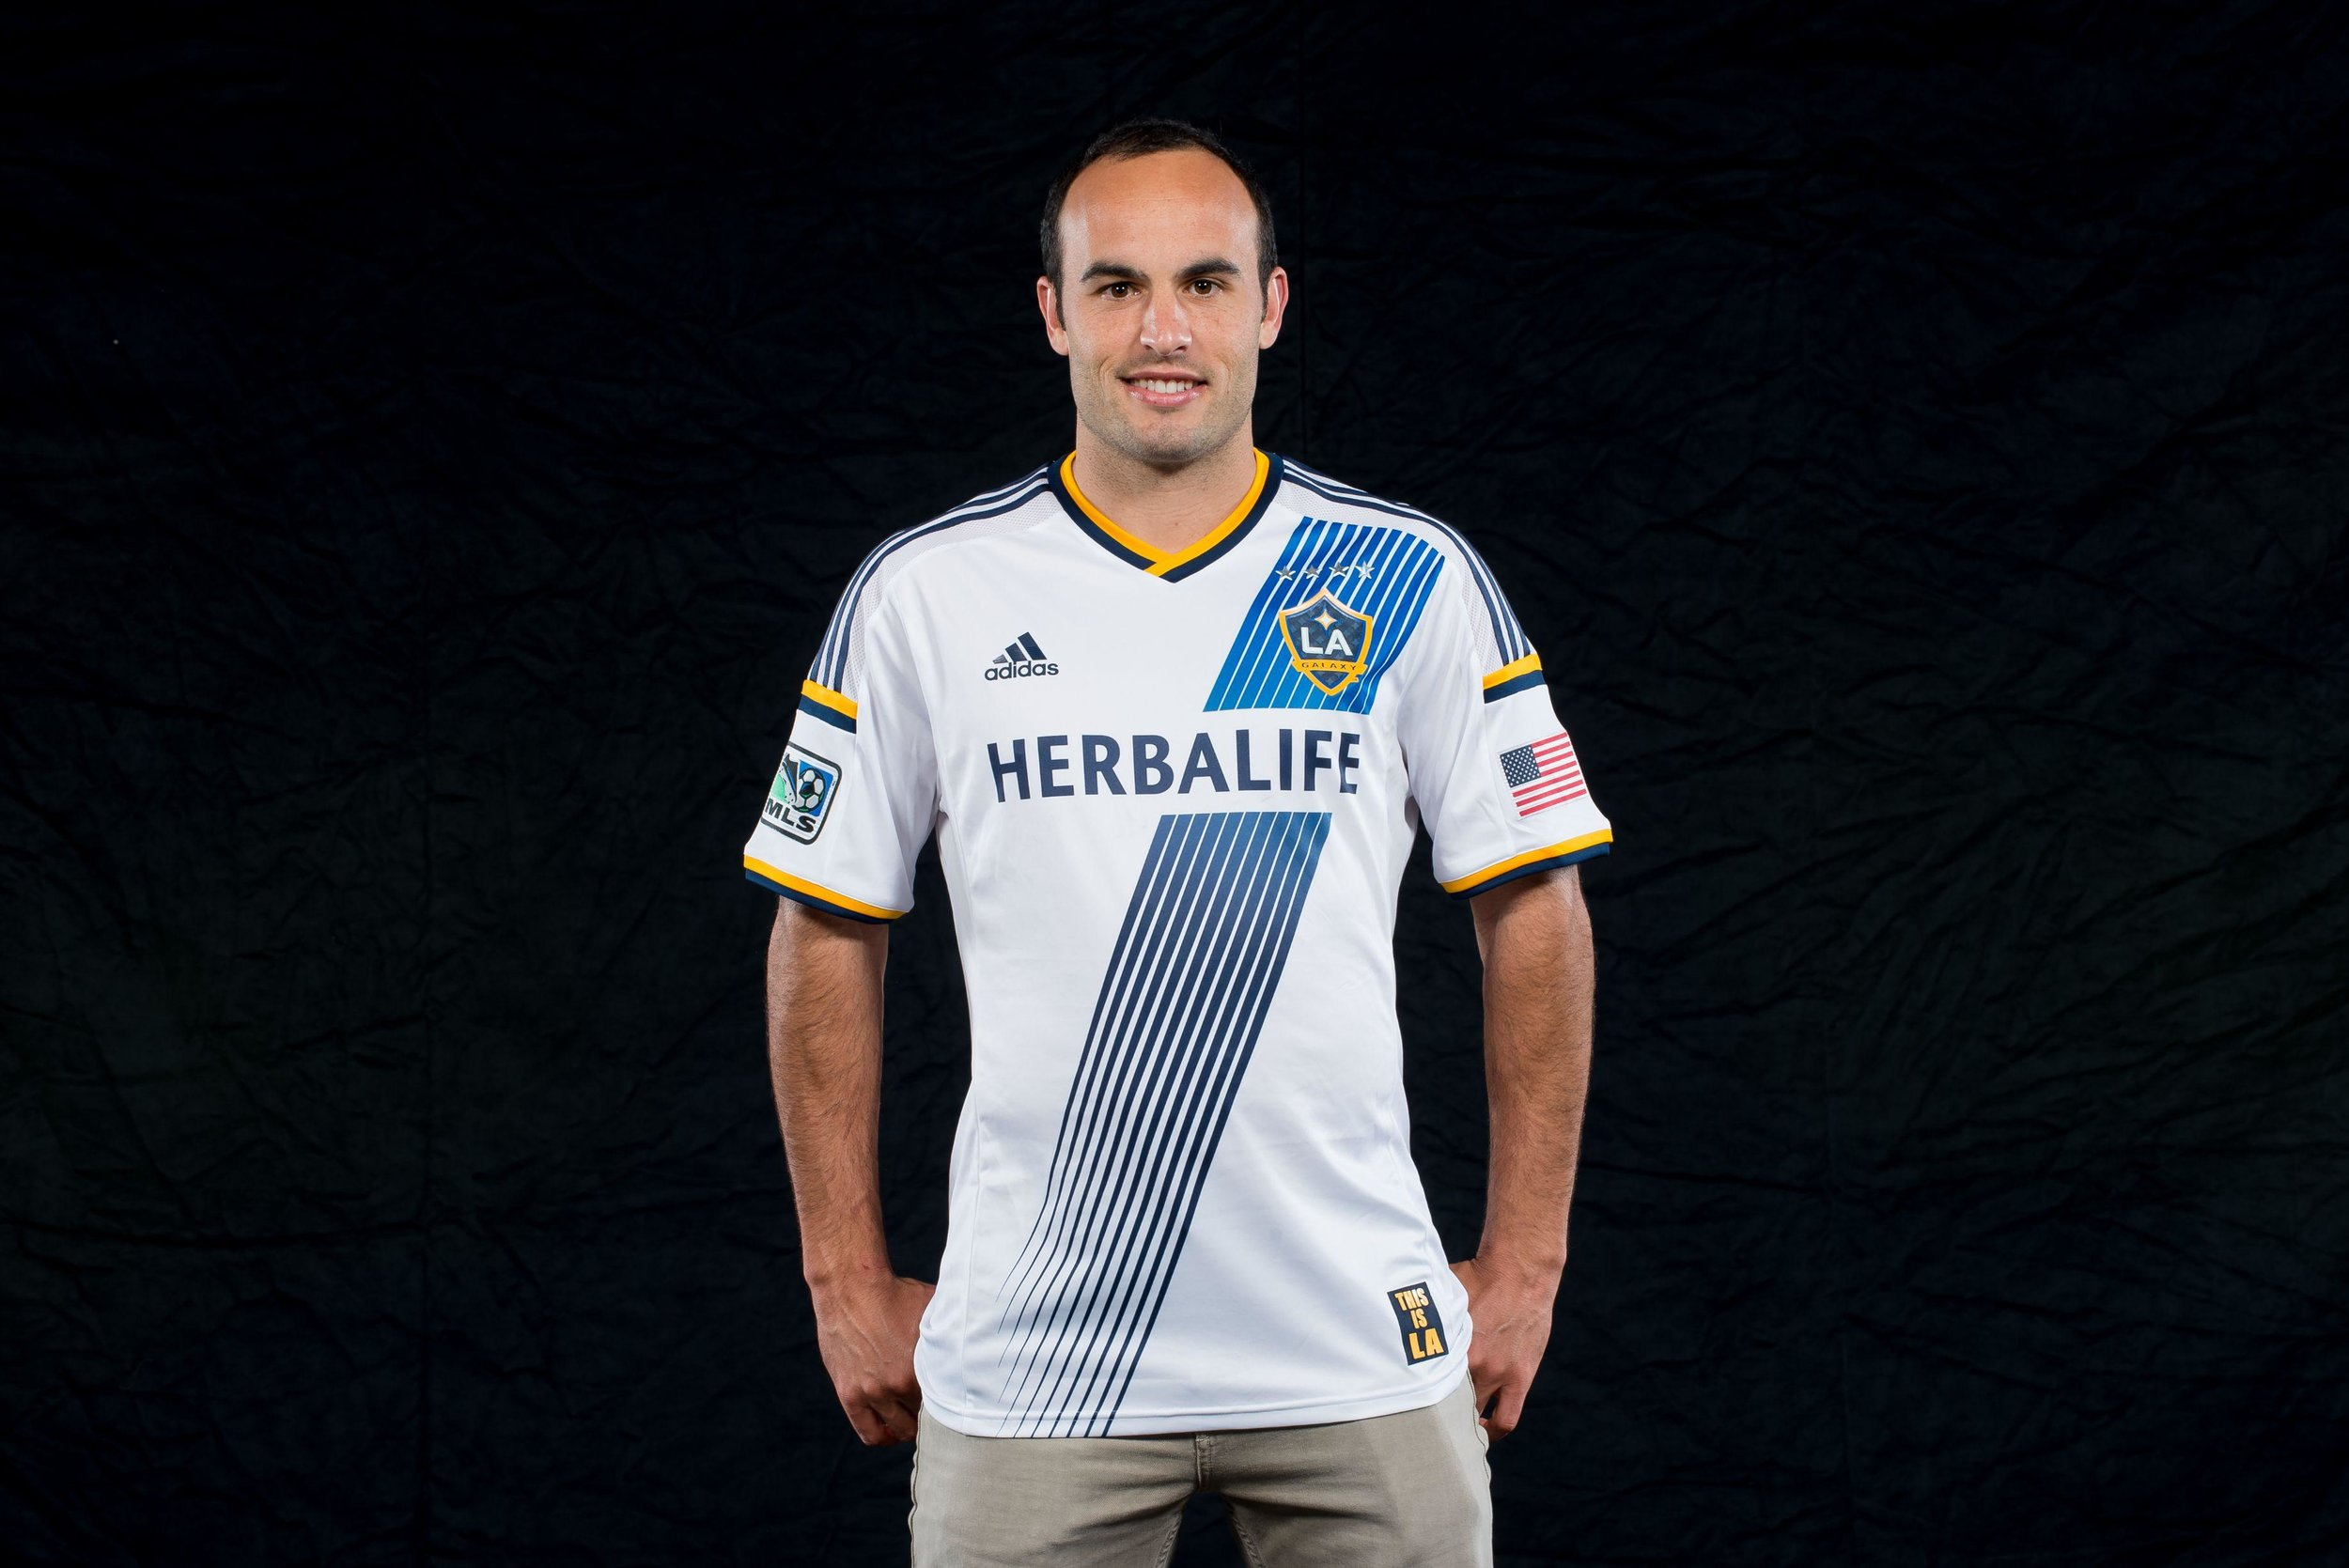 The Legend Of MLS finally comes to MLS.